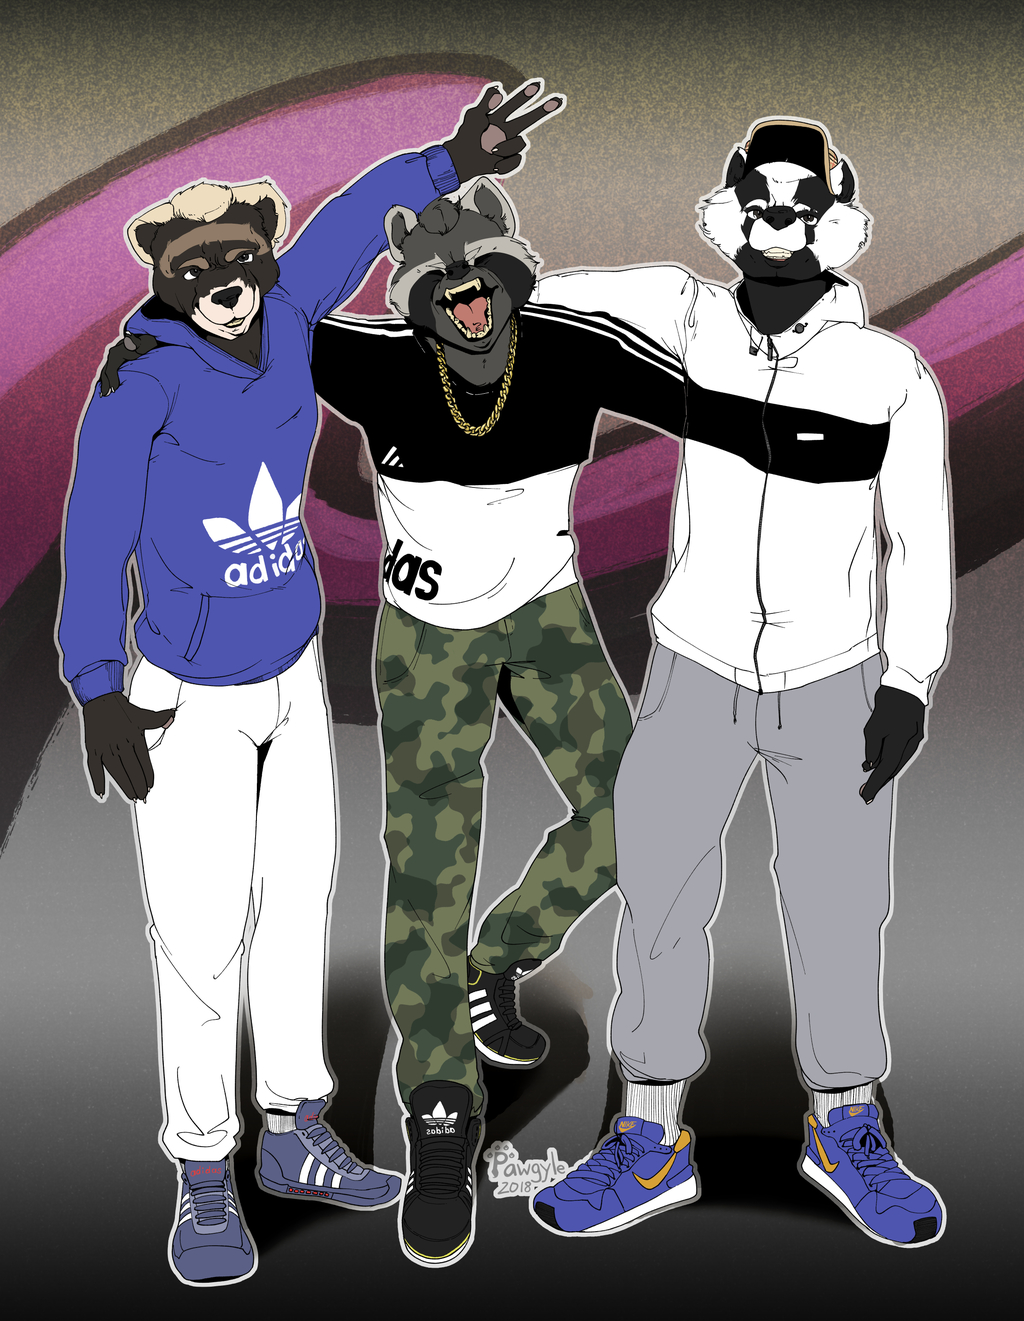 3 chavvy hoodlums.